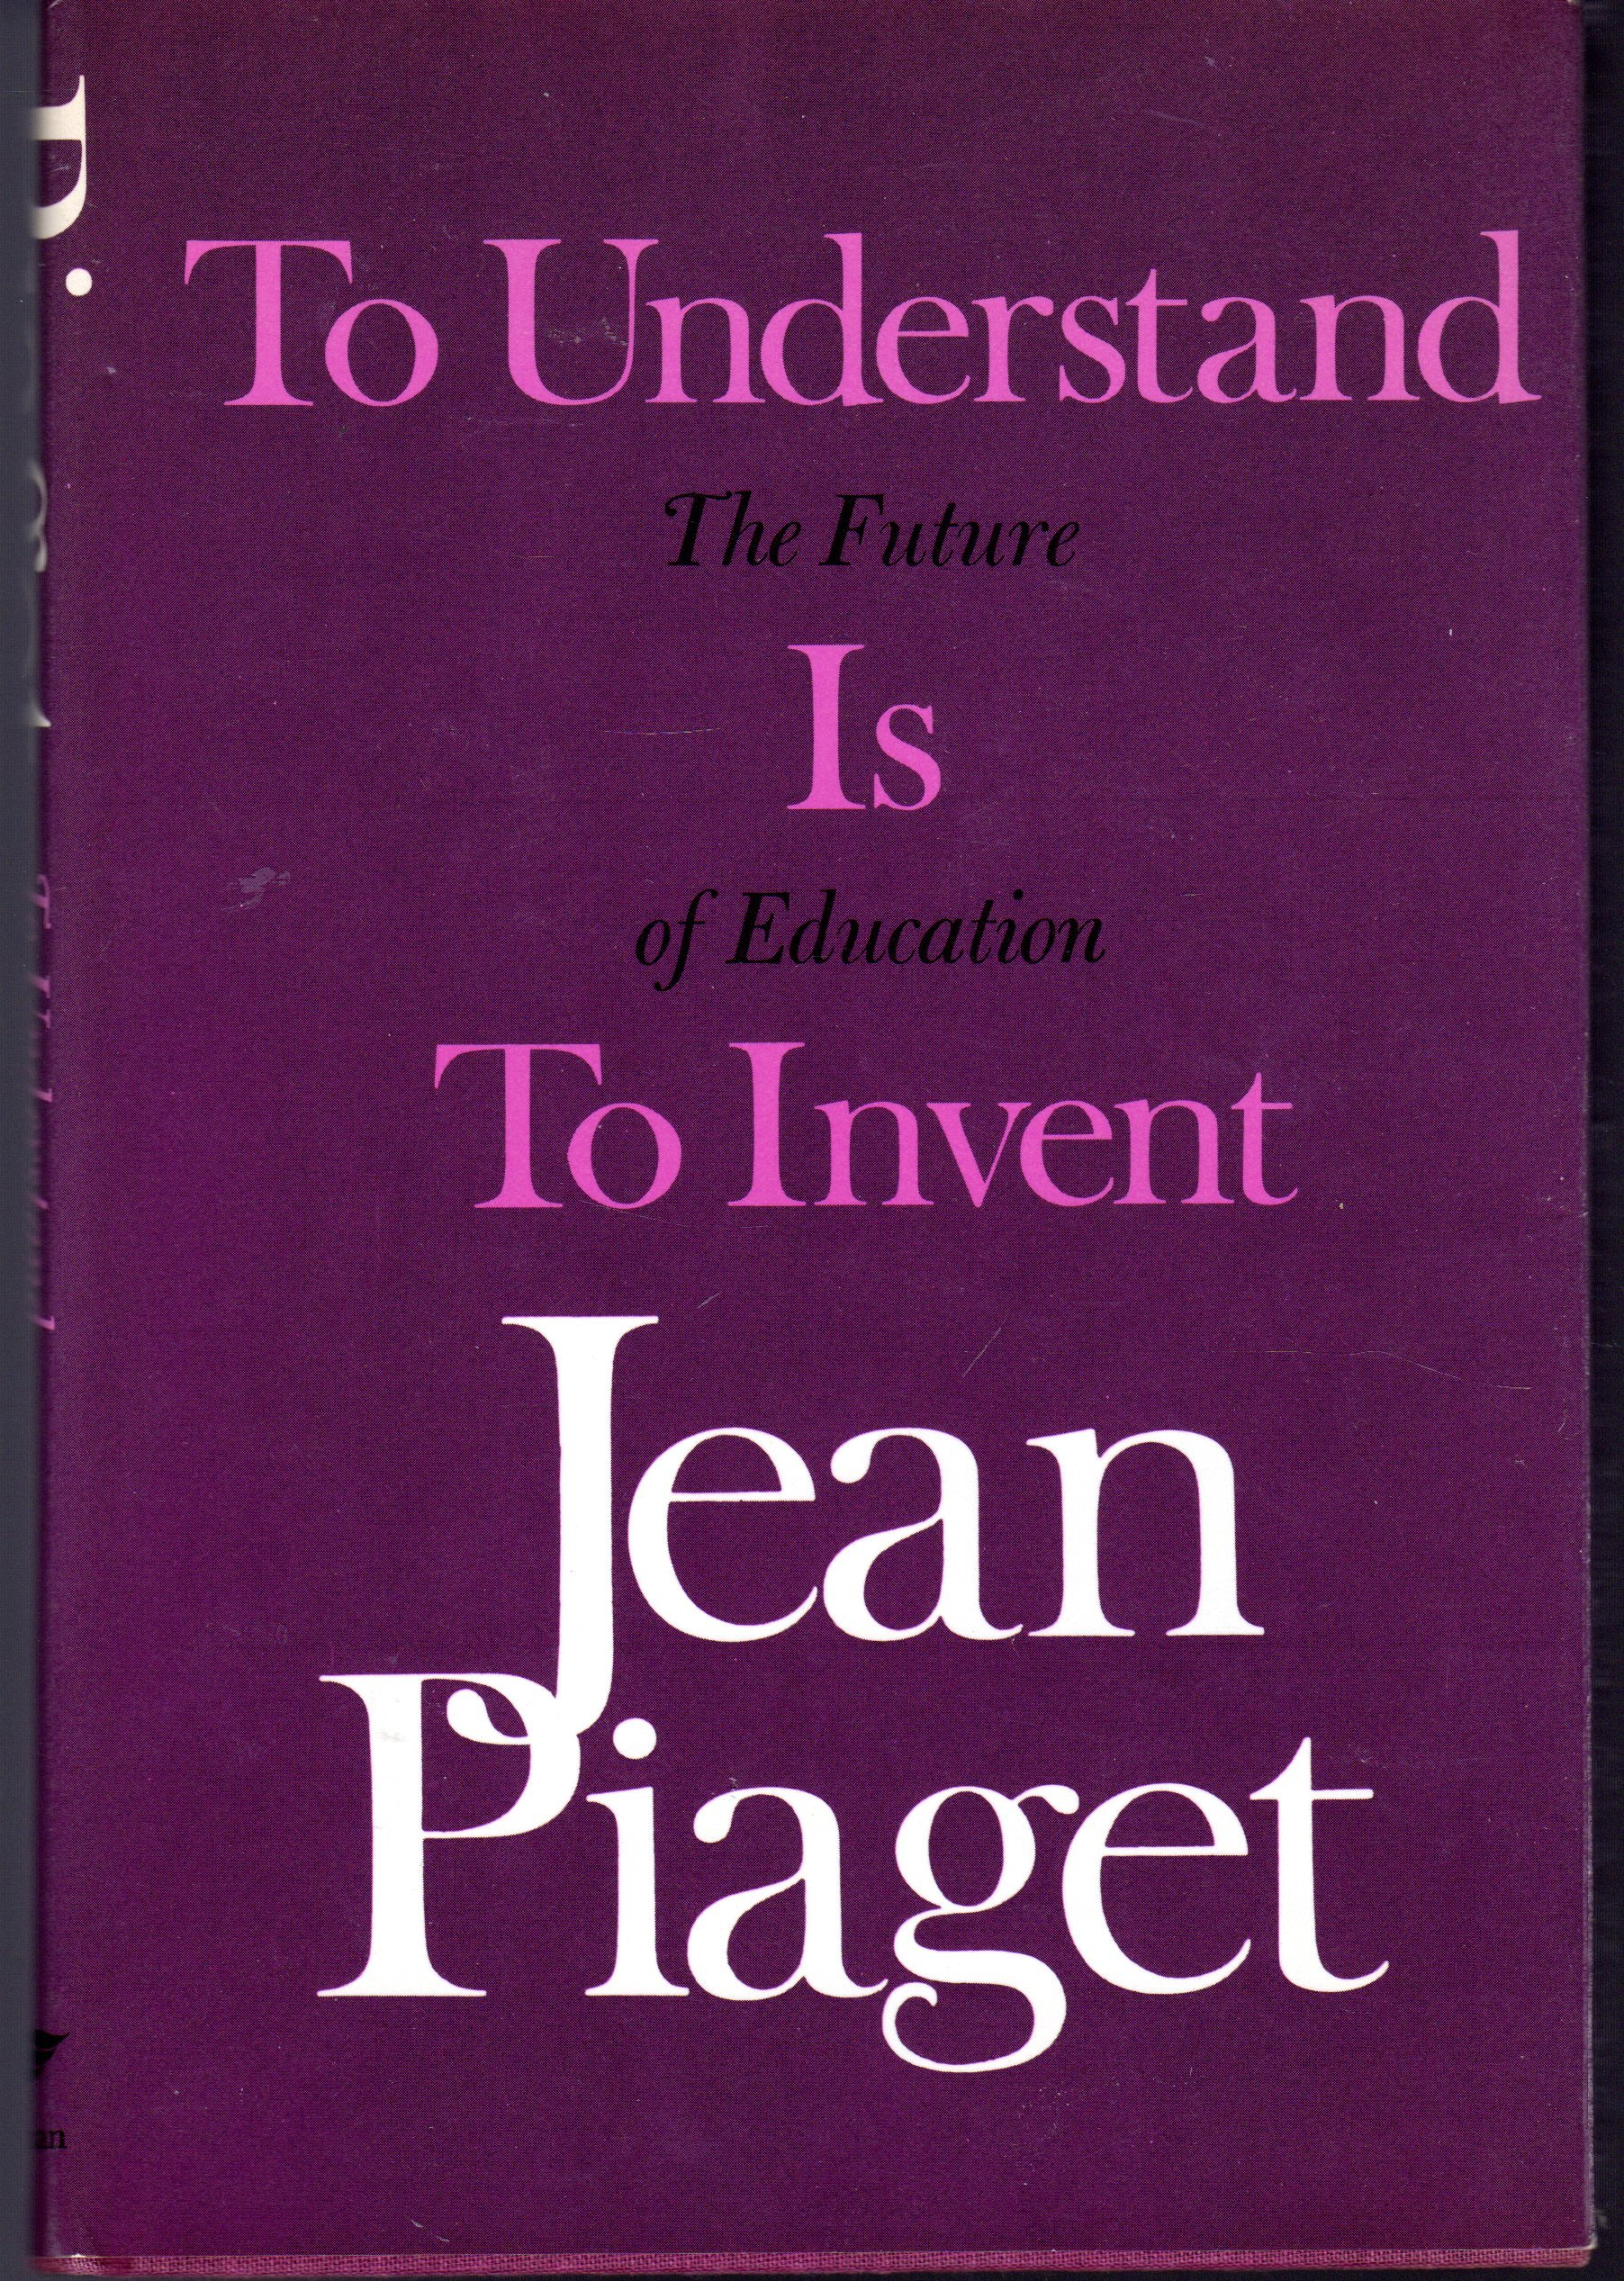 To Understand Is Invent The Future Of Education Jean Piaget 9780670720347 Amazon Books